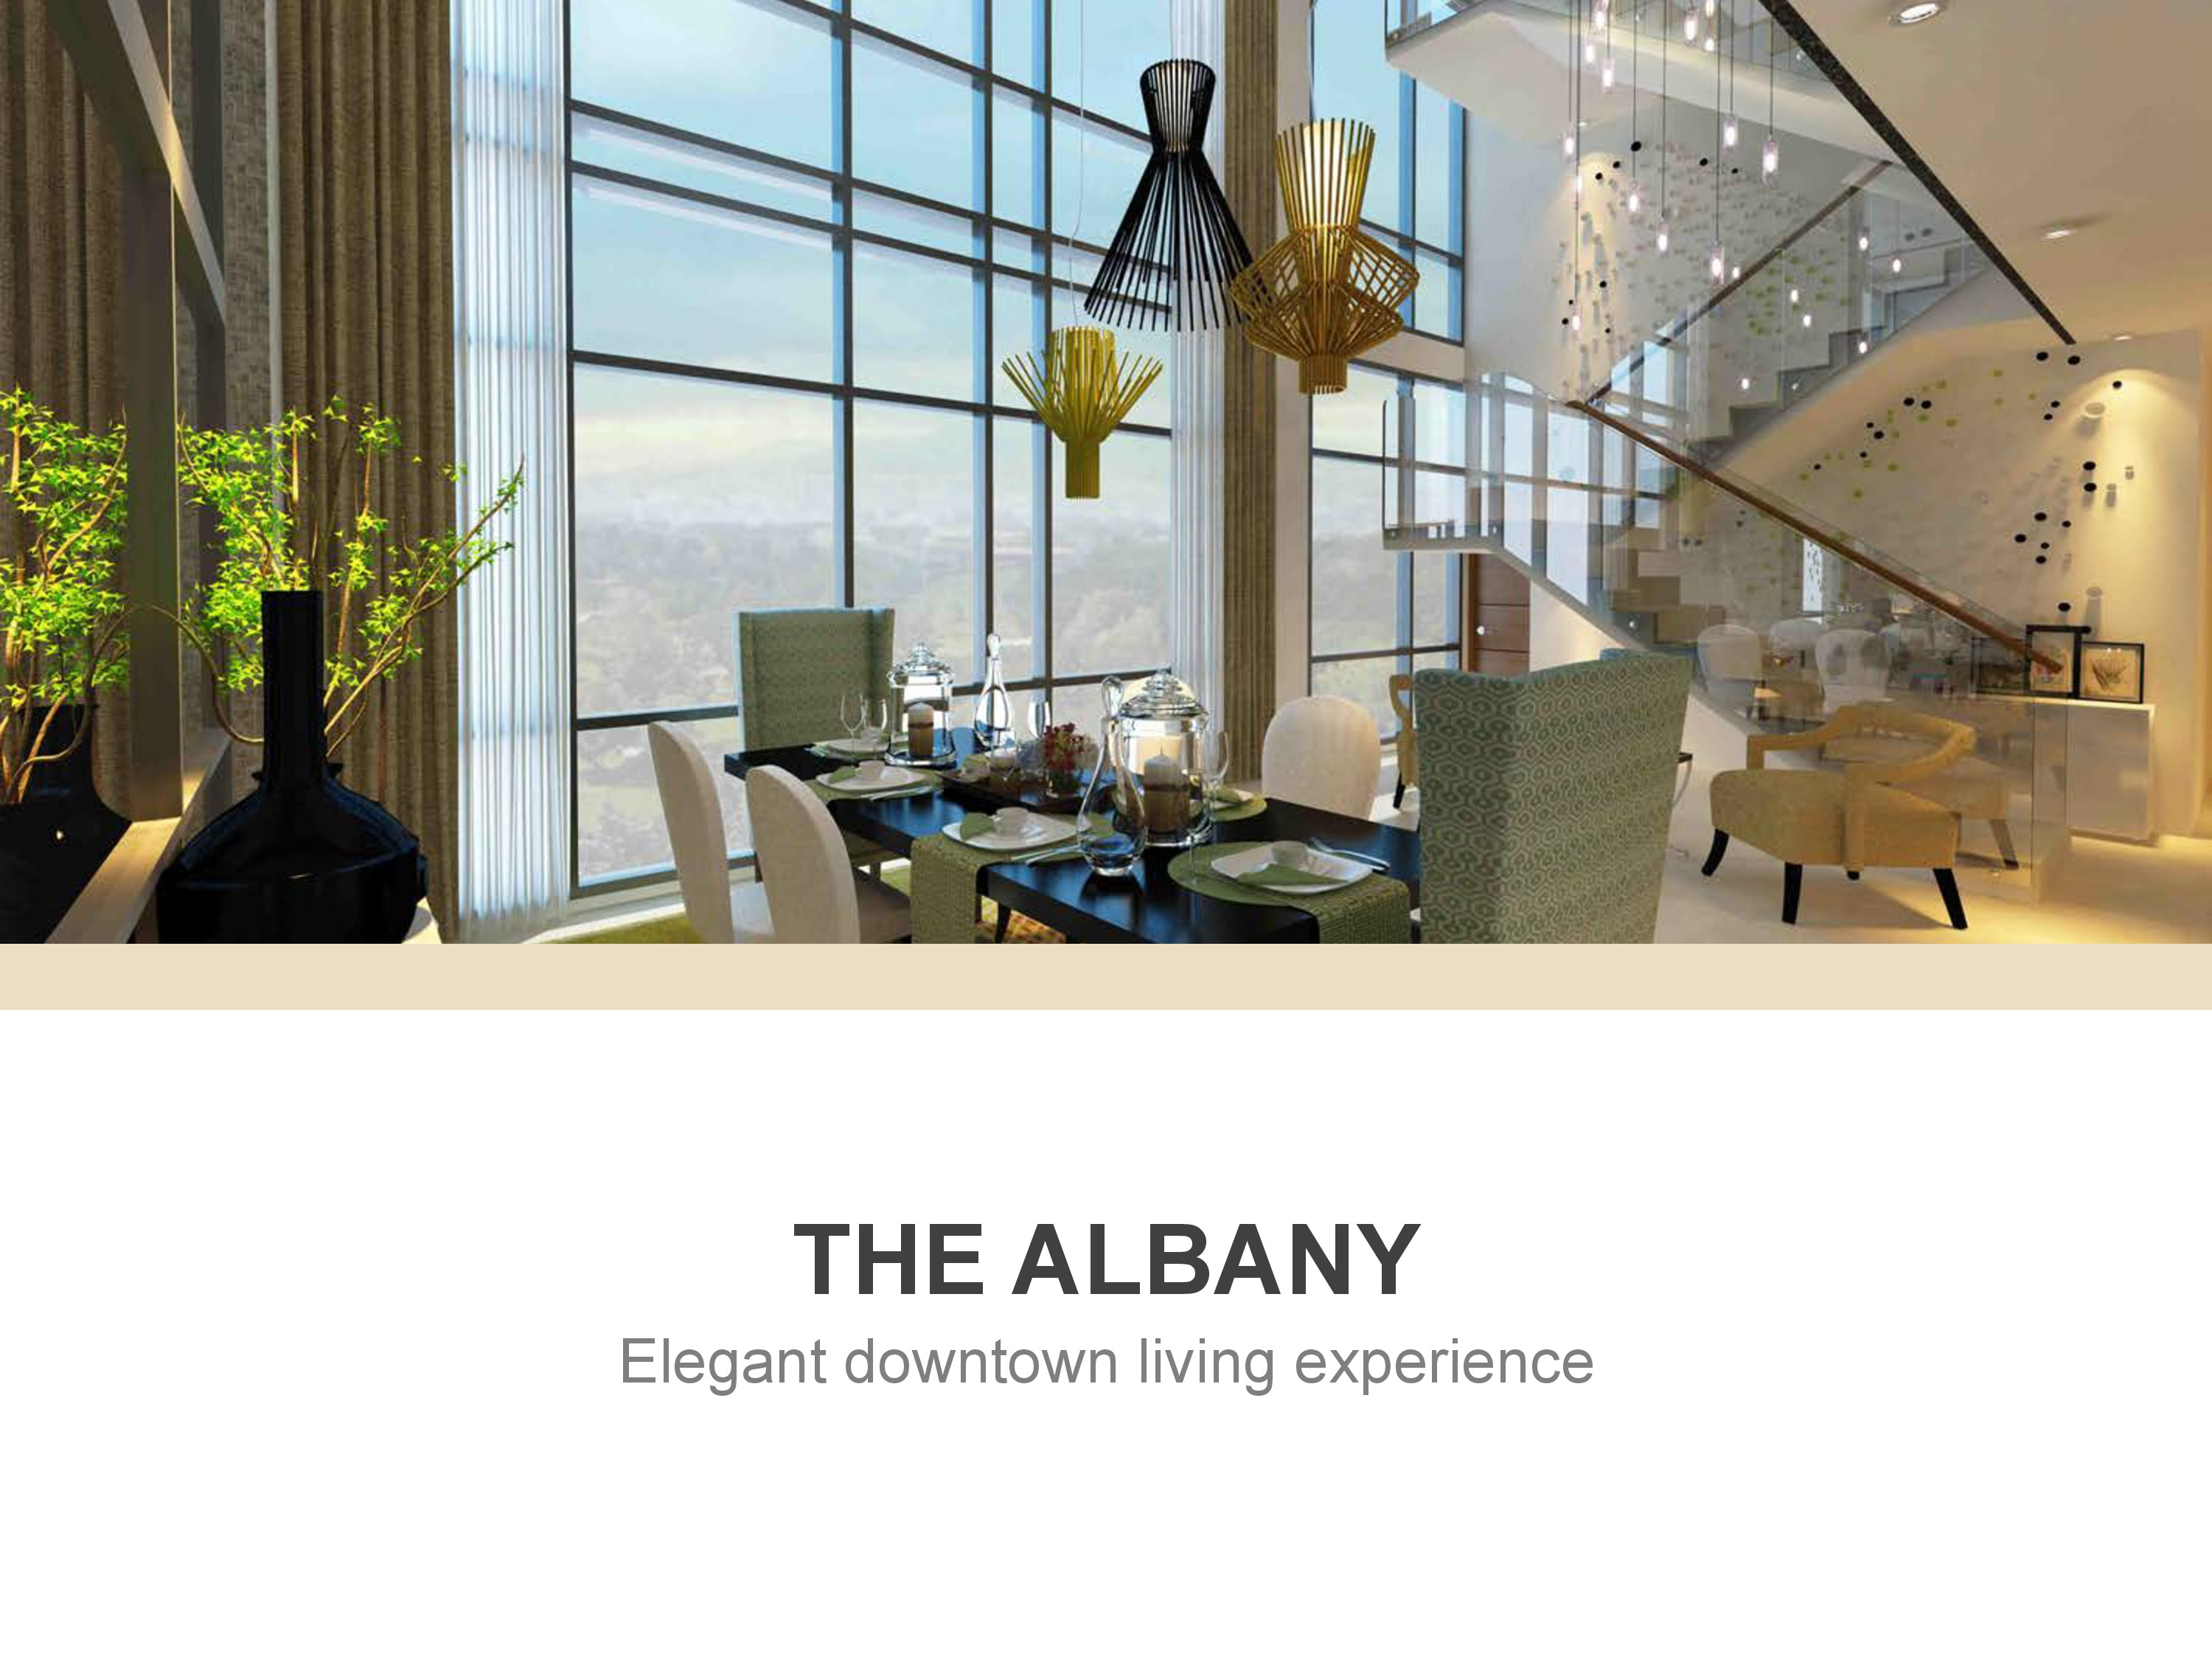 The Albany at Kinsley Tower- Elegant downtown living experience